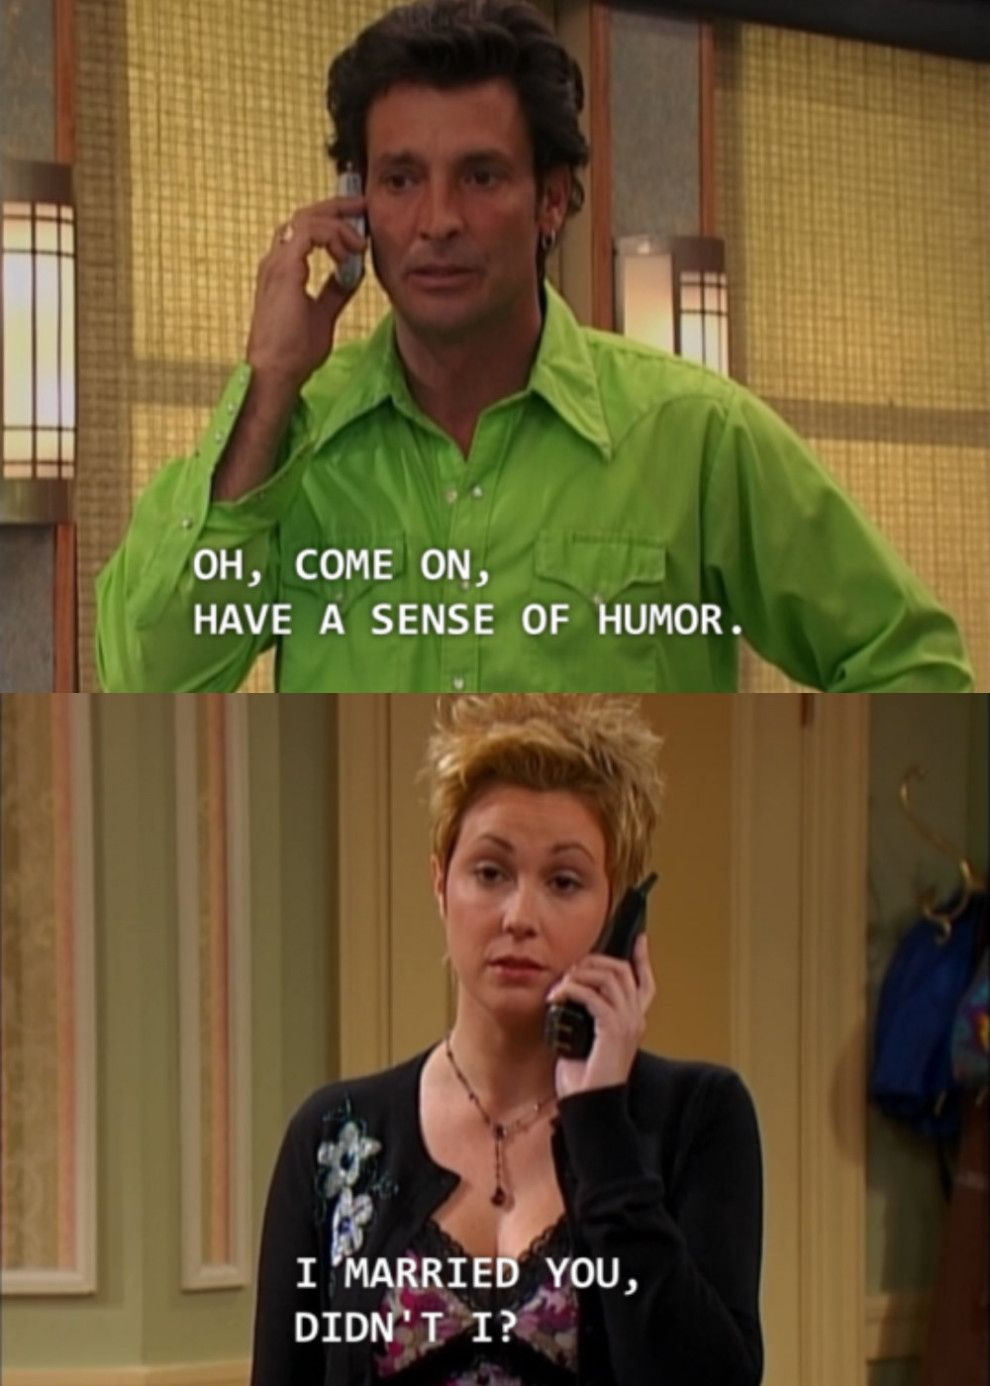 301d142c8e8ea487945685386b56b60f when carey was savage af auburn, honey and suite life